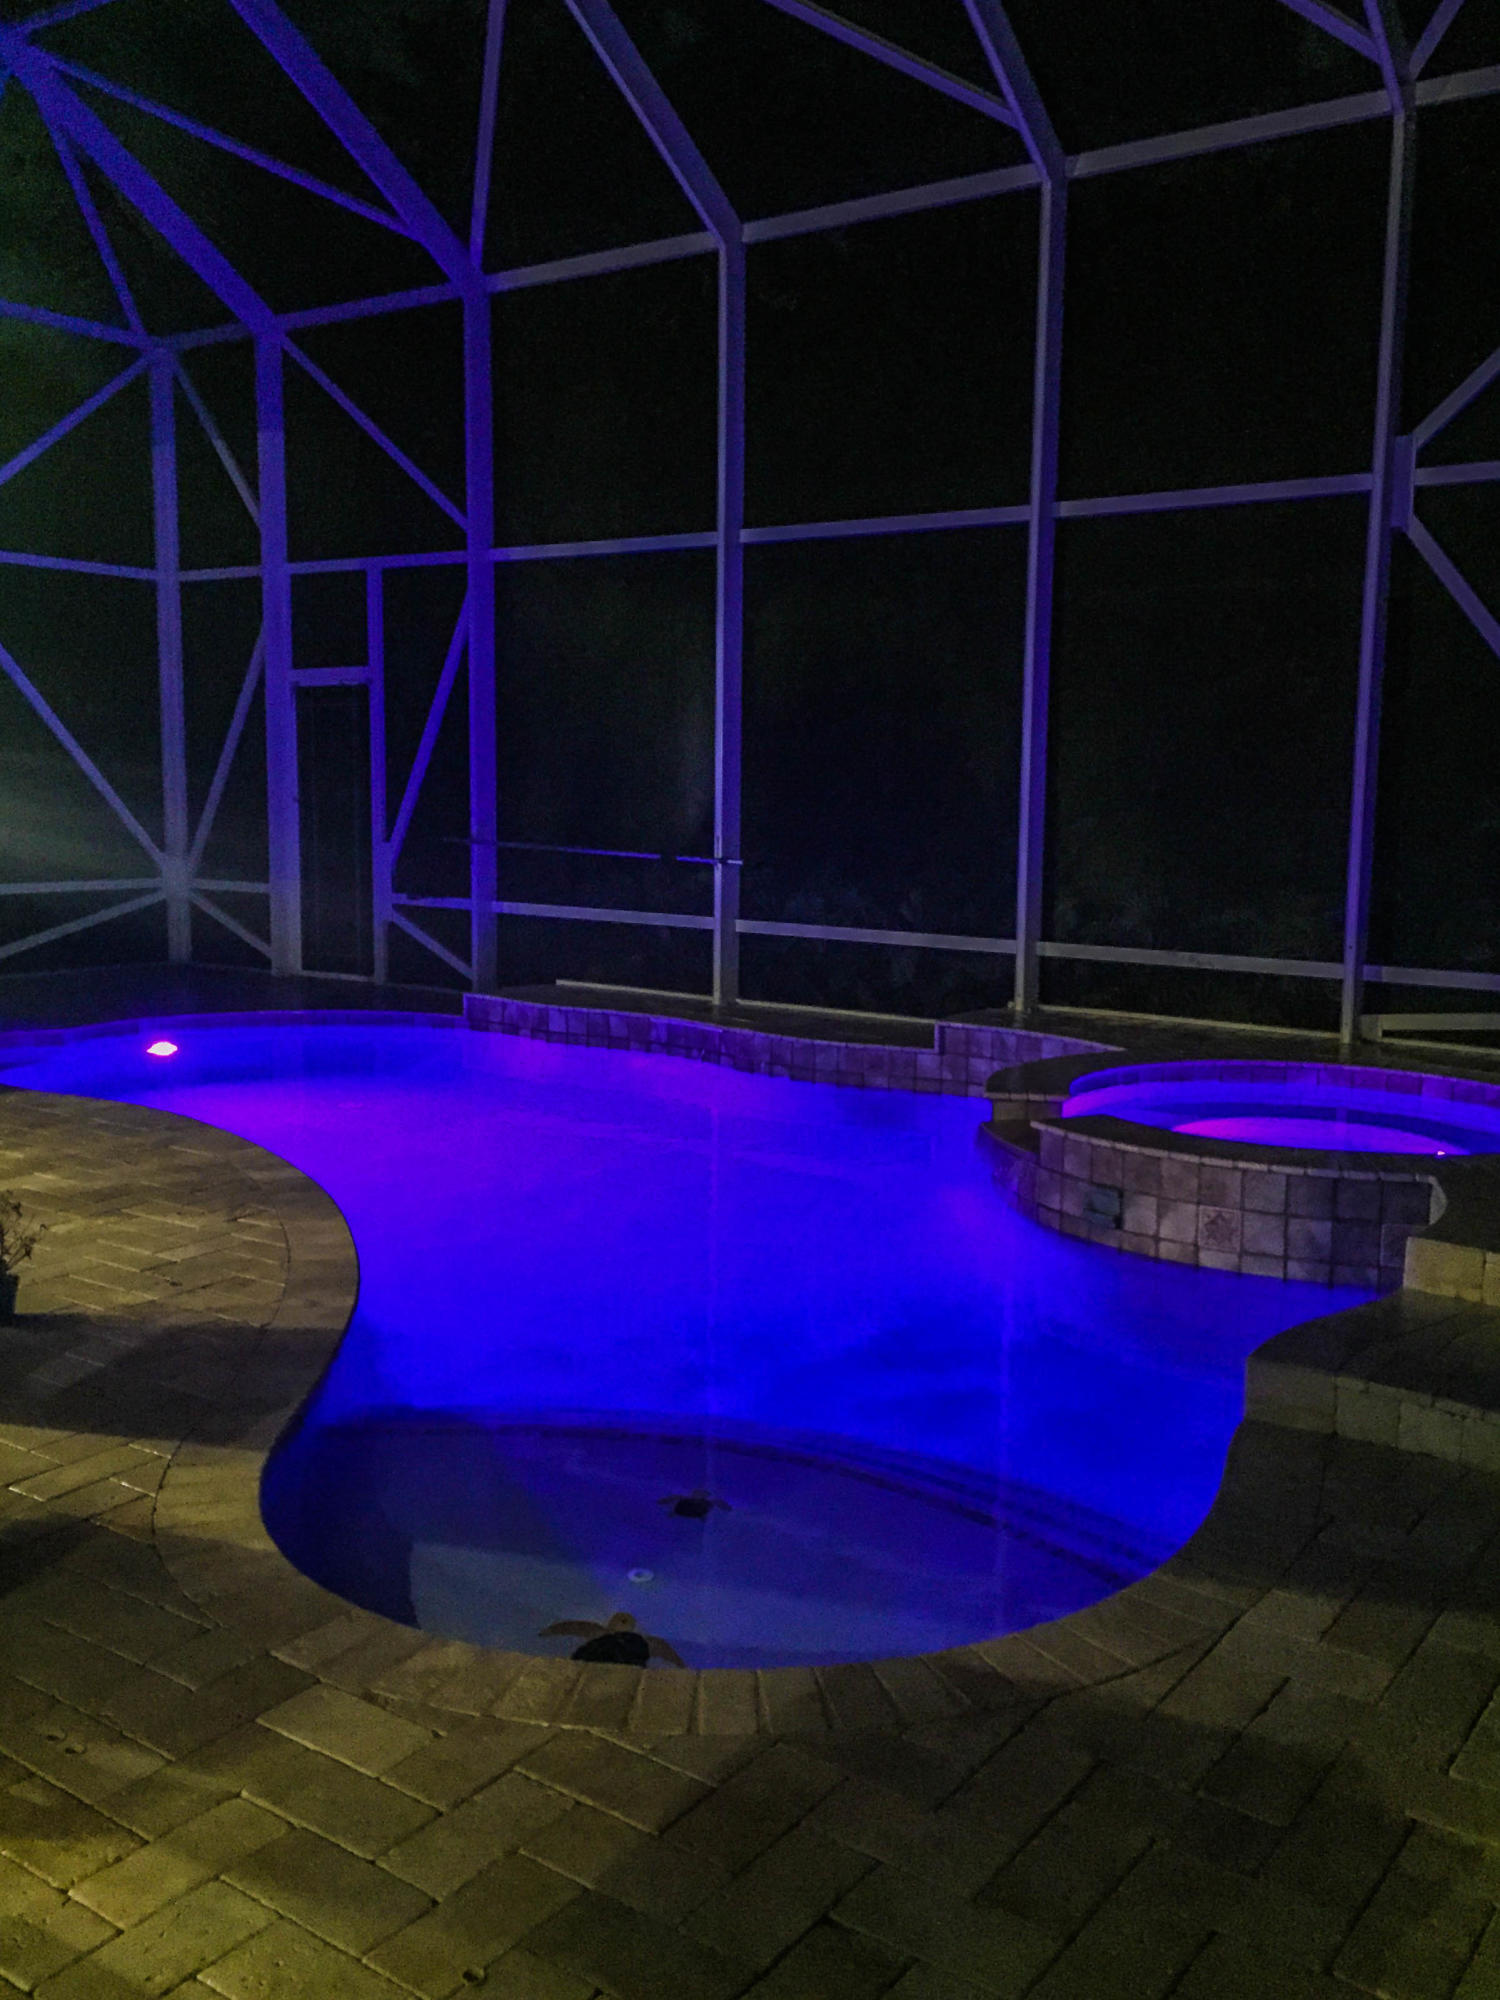 NIGHT TIME POOL